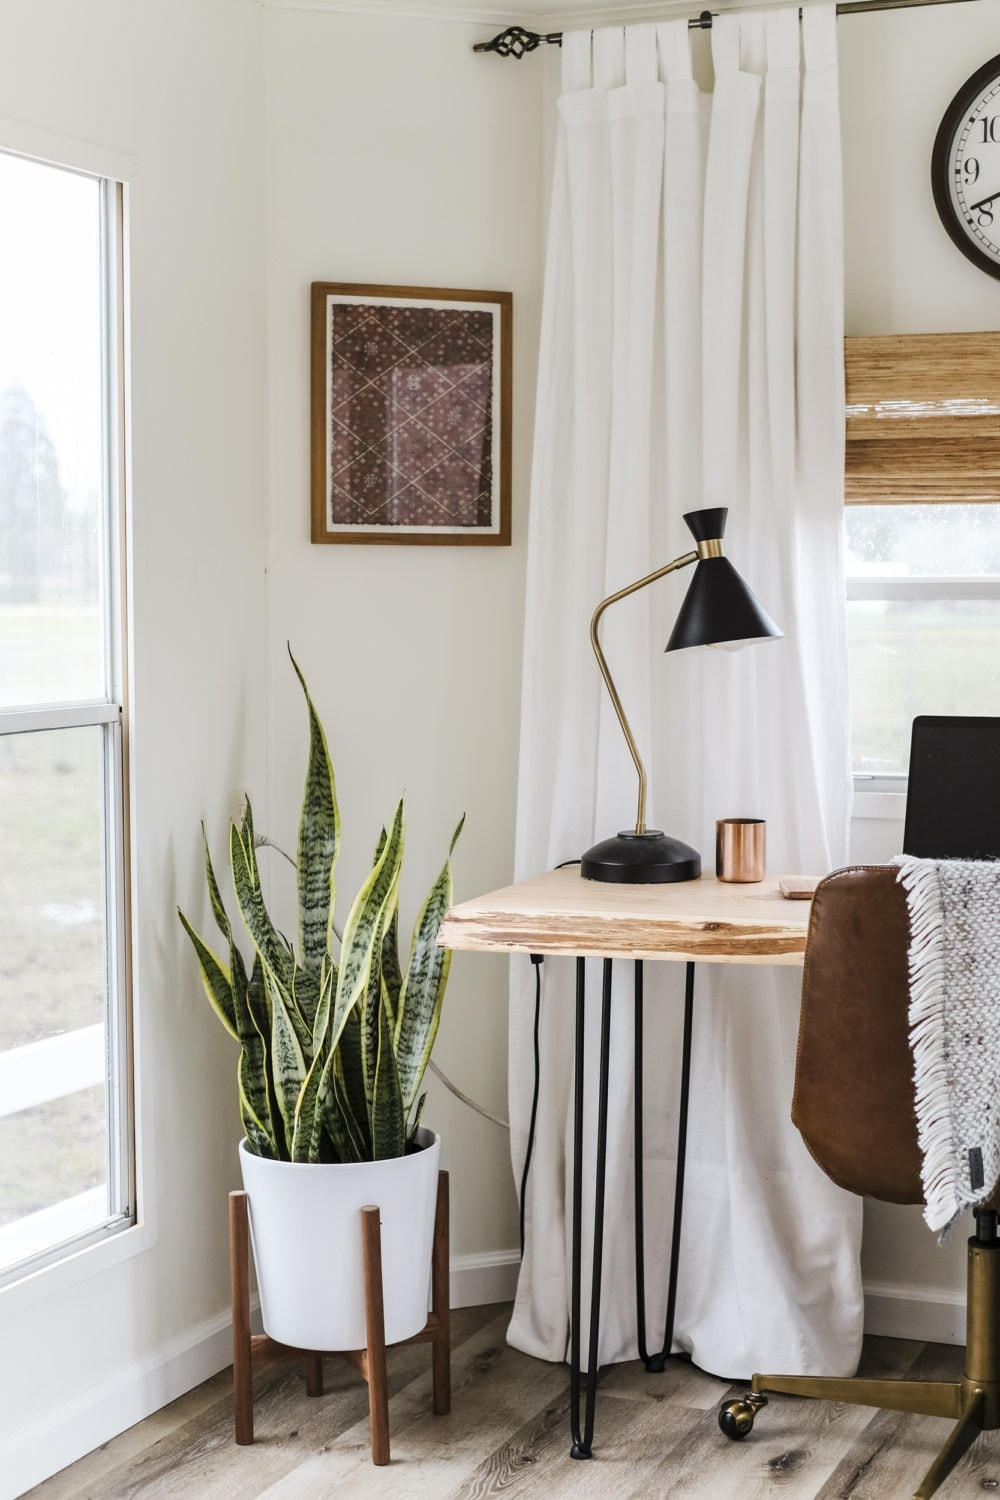 Snake plant in the corner next to a wood desk